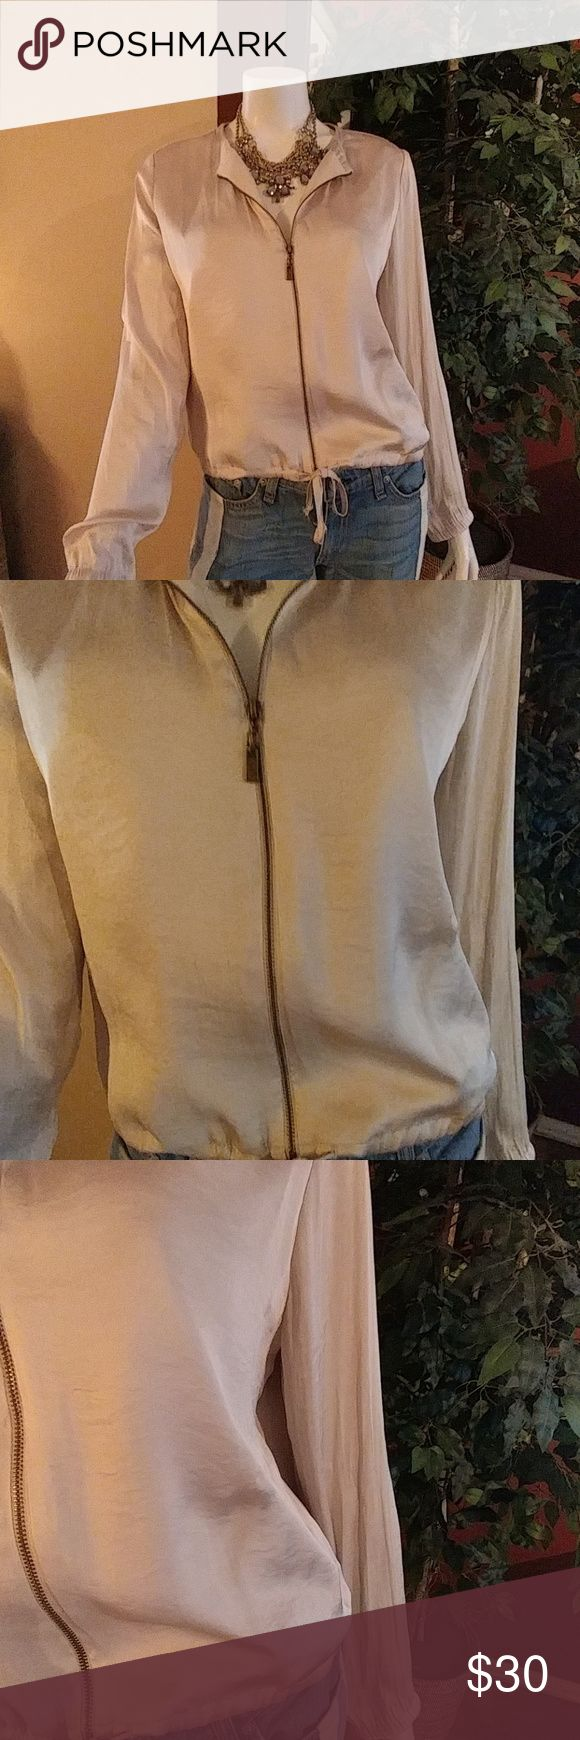 Romeo + Juliet Couture Lightweight Bomber Jacket Beautiful tan satin bomber jacket. Drawstring waist and elastic at the sleeves. Size M Romeo + Juliet Couture Tops